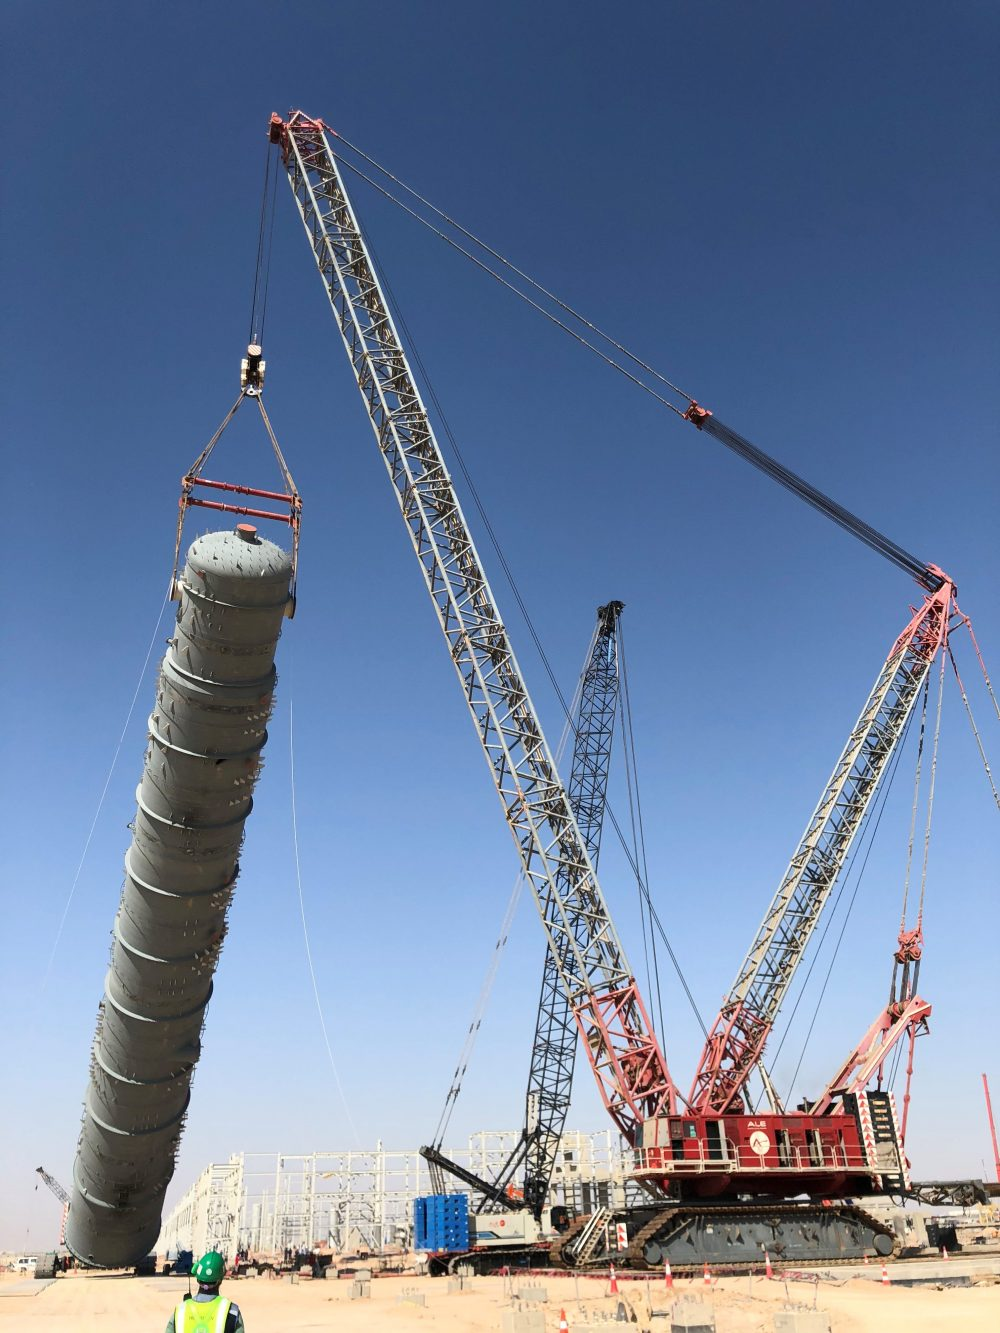 ALE using their CC8800-1 as the main crawler crane to lift one of the refinery components and a CC2800 as tailing crane.